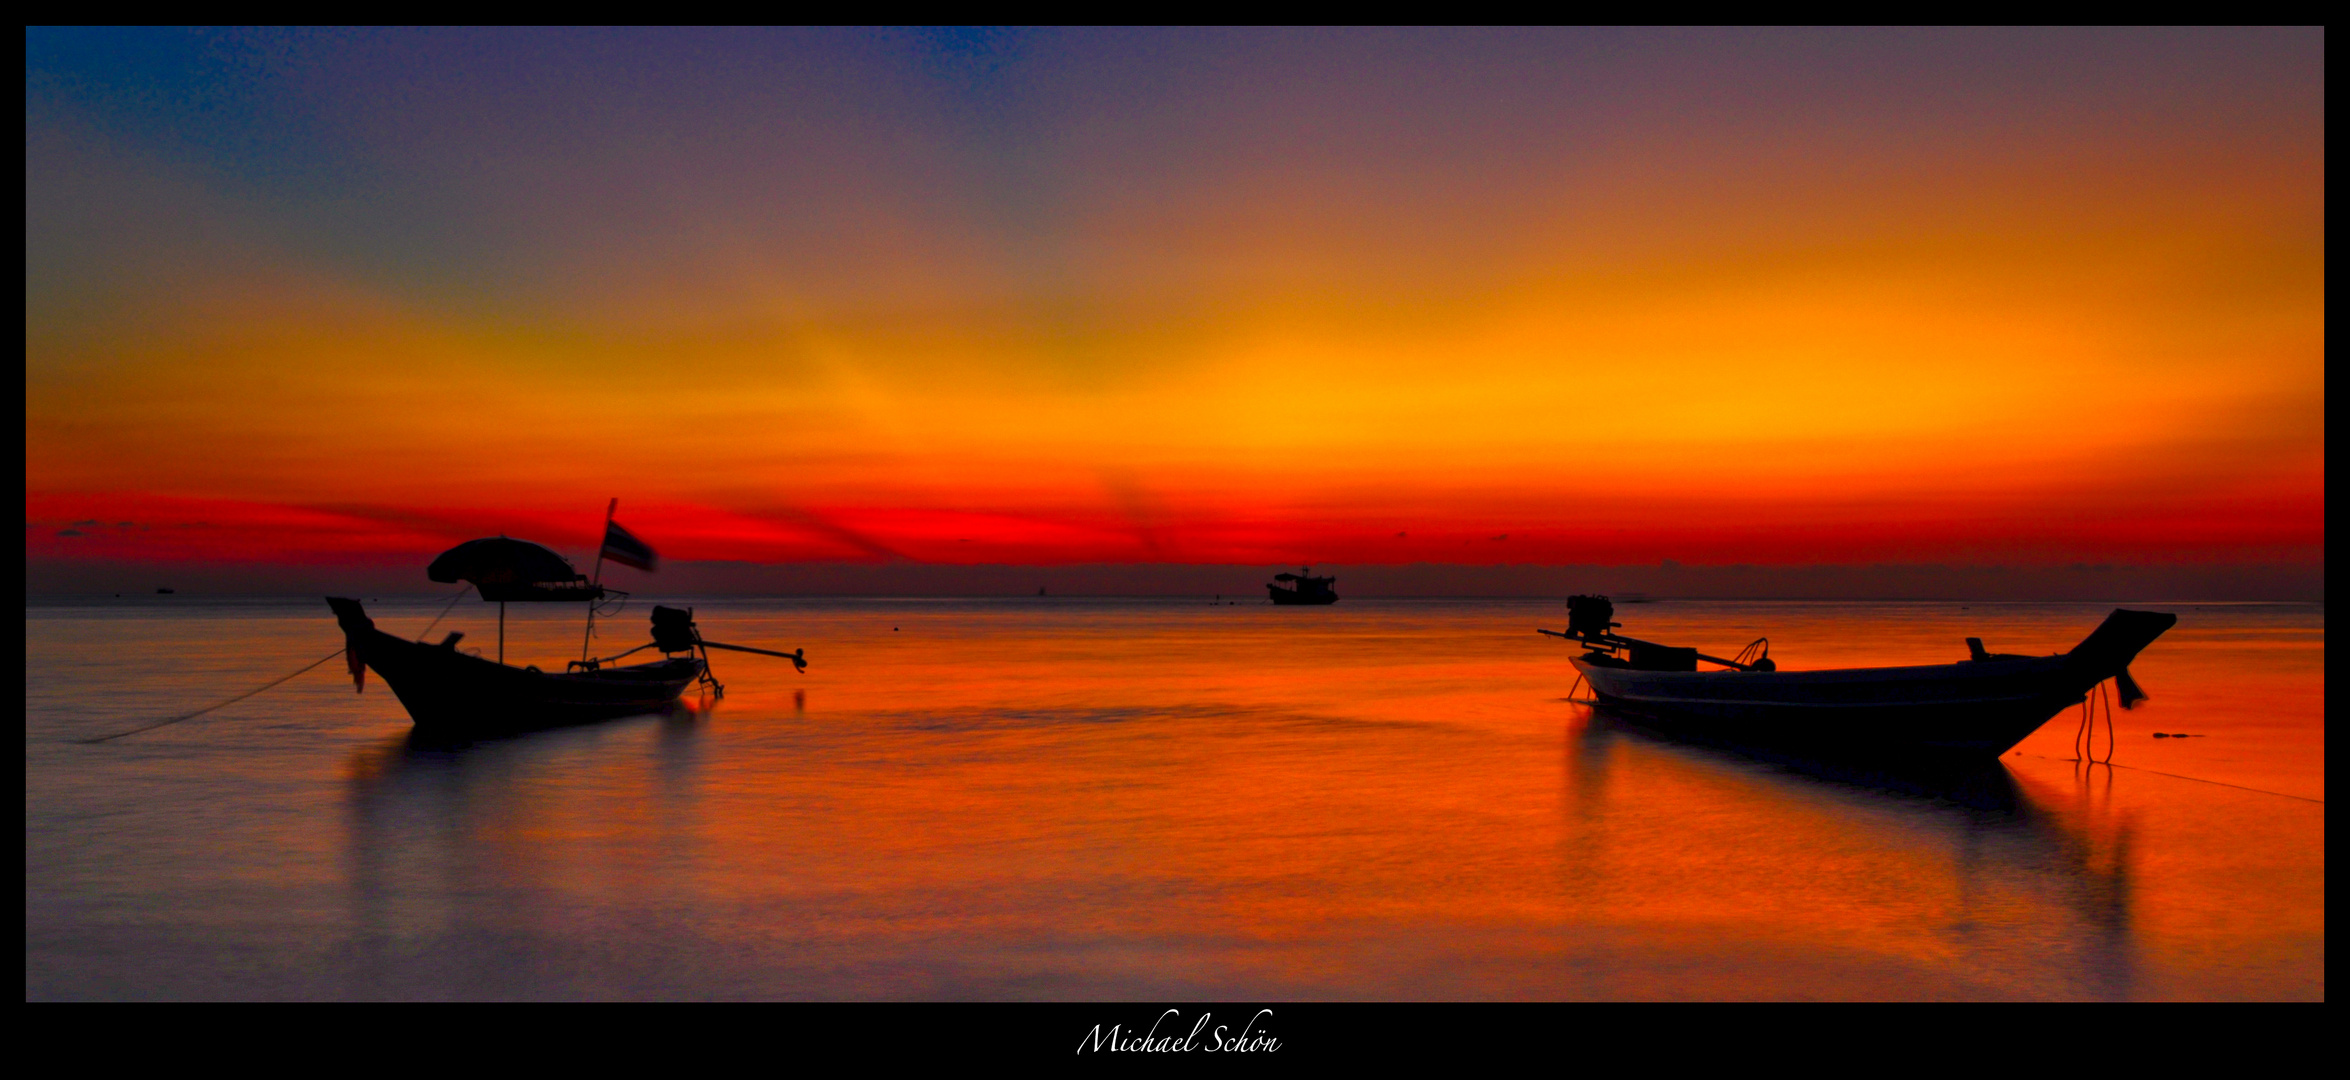 Sunset in Koh Tao, South Thailand